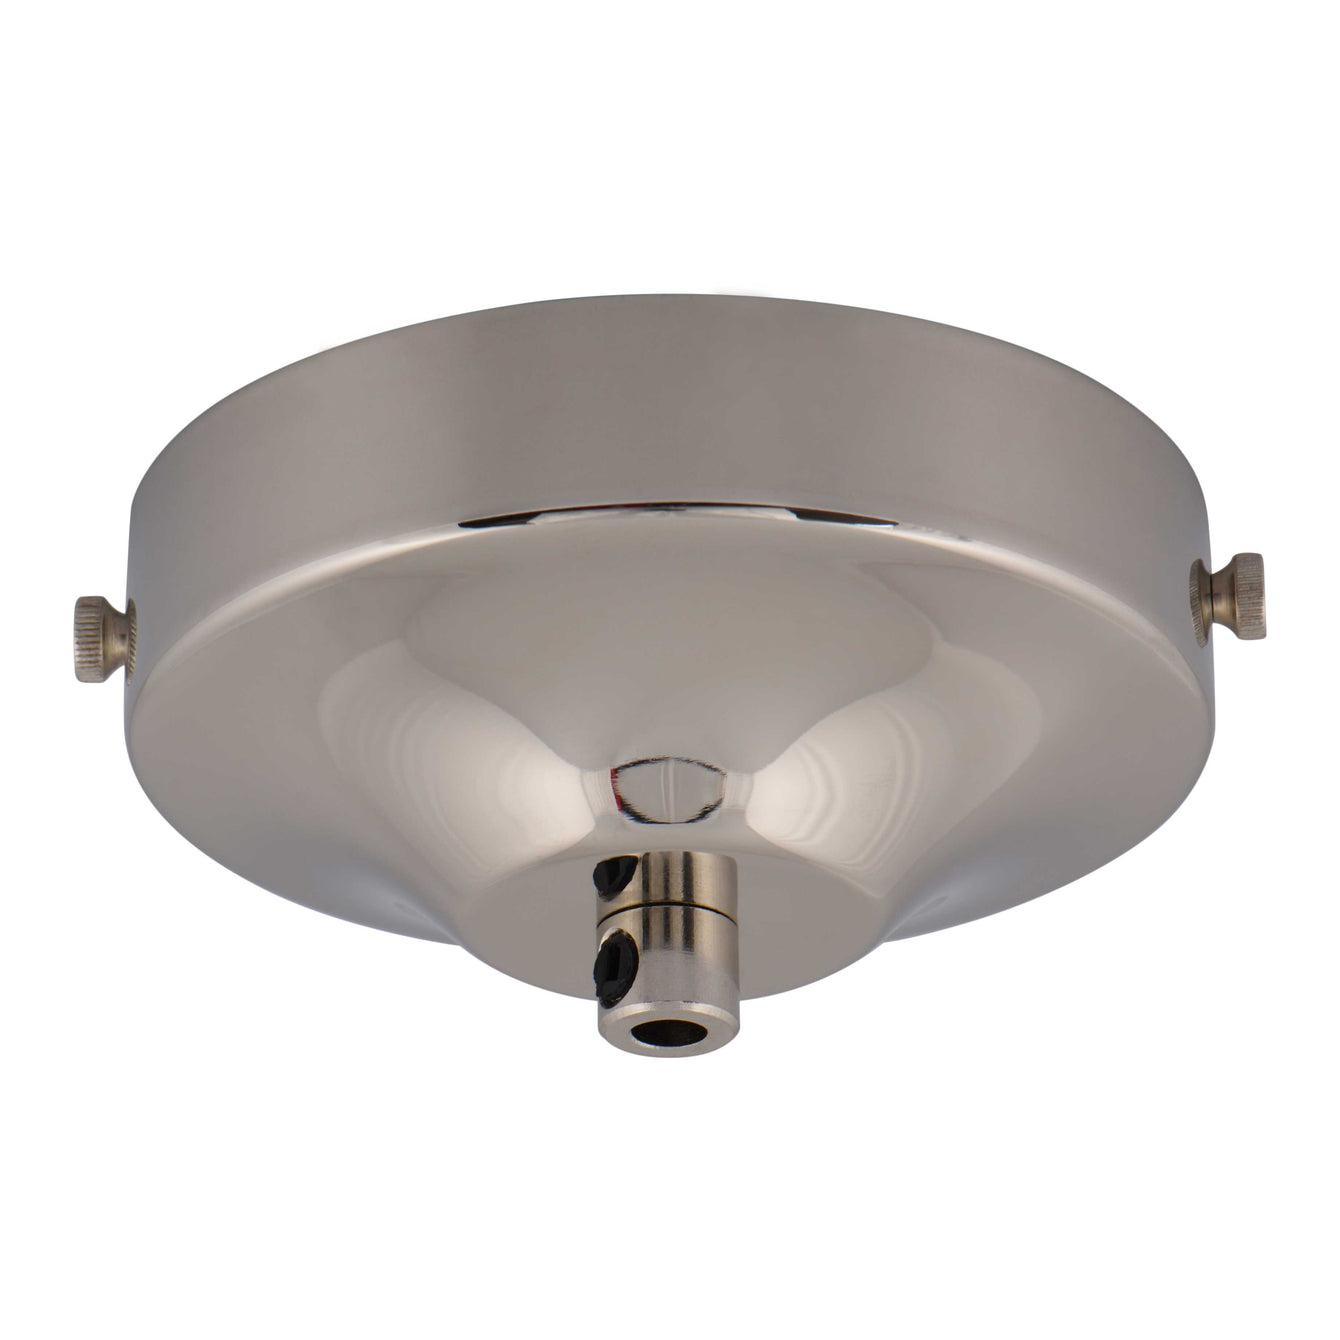 ElekTek 100mm Diameter Convex Ceiling Rose with Strap Bracket and Cord Grip Metallic Finishes Powder Coated Colours - Buy It Better Antique Copper